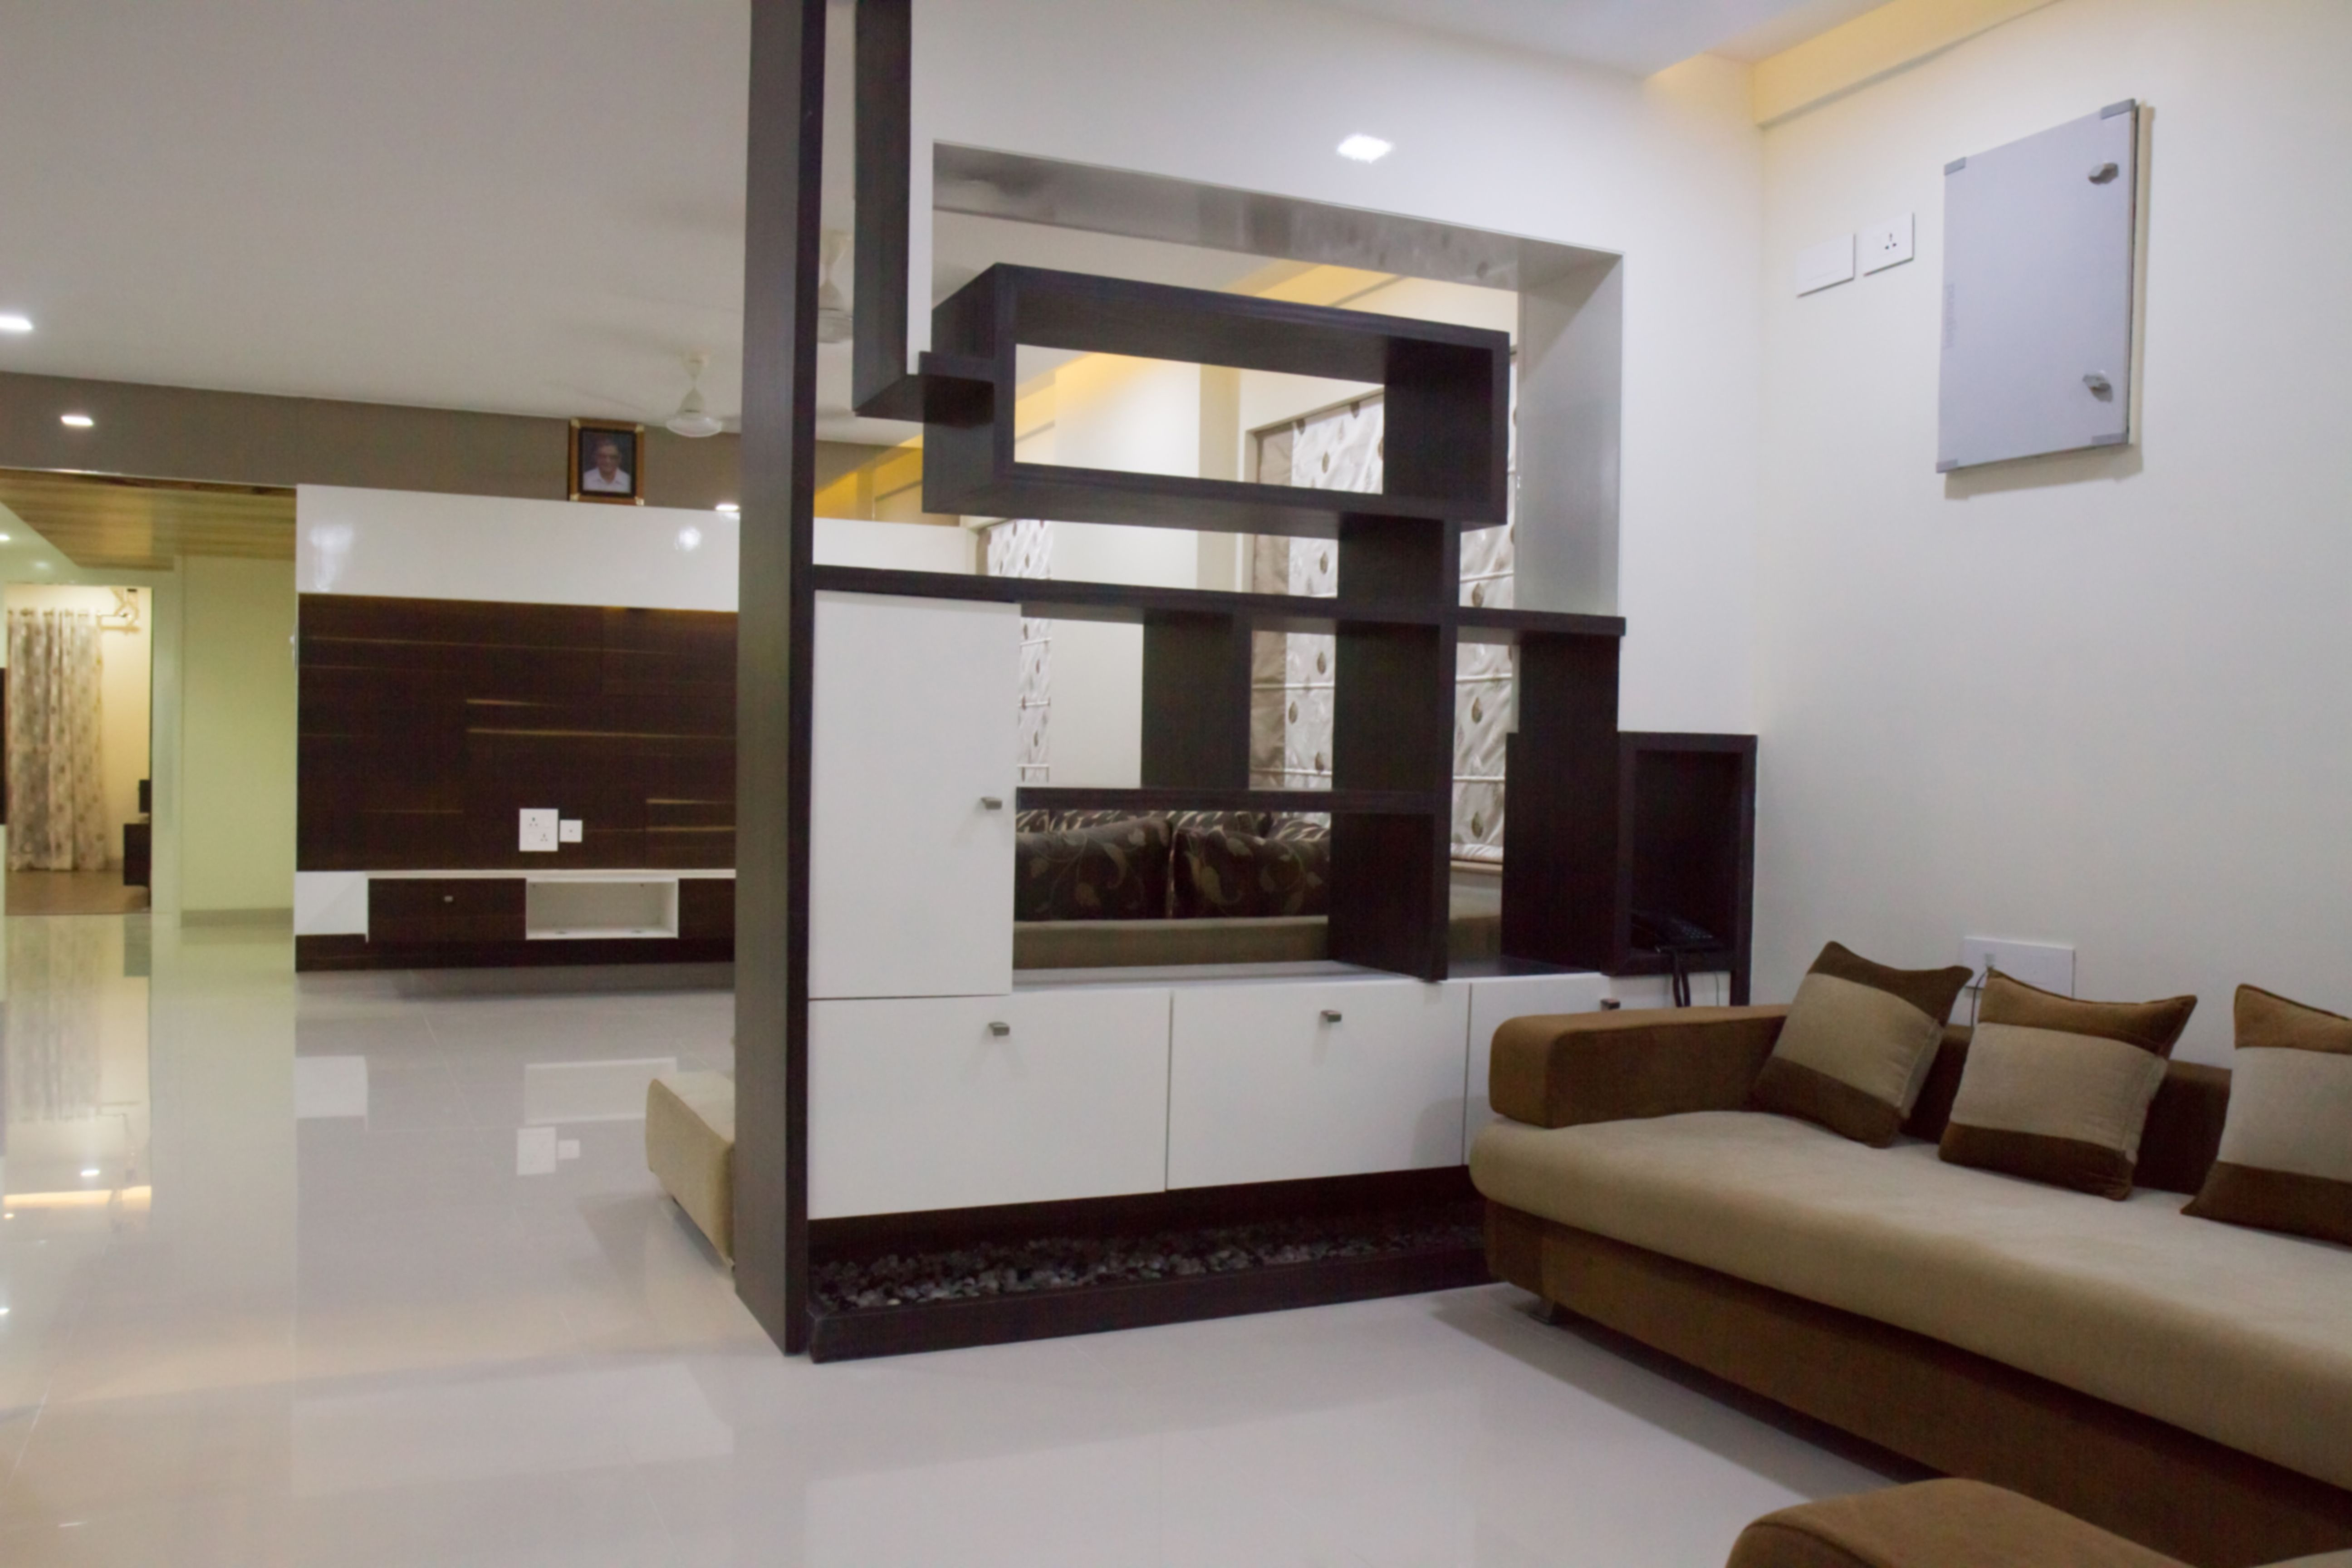 Discover ideas about interior designers in hyderabad also extend the living room design with style and comfort rh pinterest